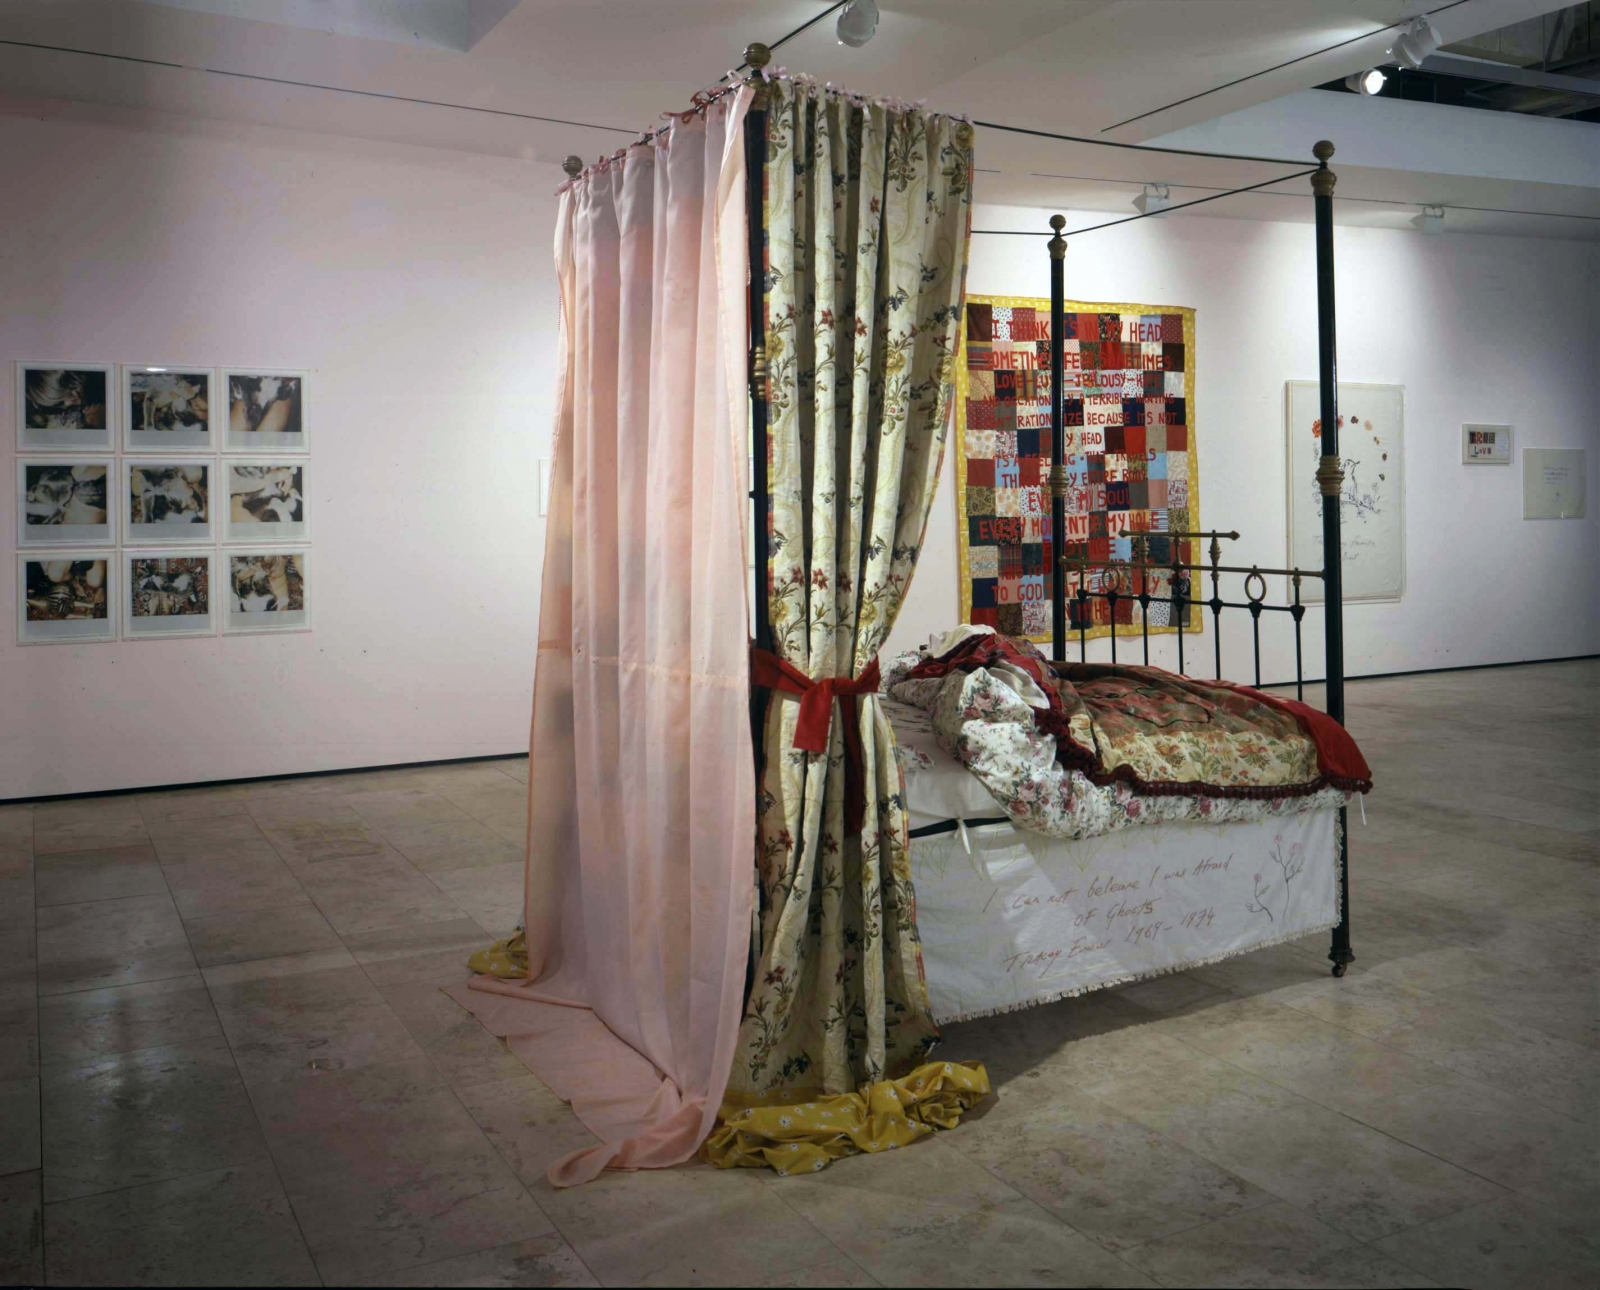 Tracey Emin: I Think It's In My Head Installation view, Lehmann Maupin Gallery 21 September - 19 October 2002 view 1